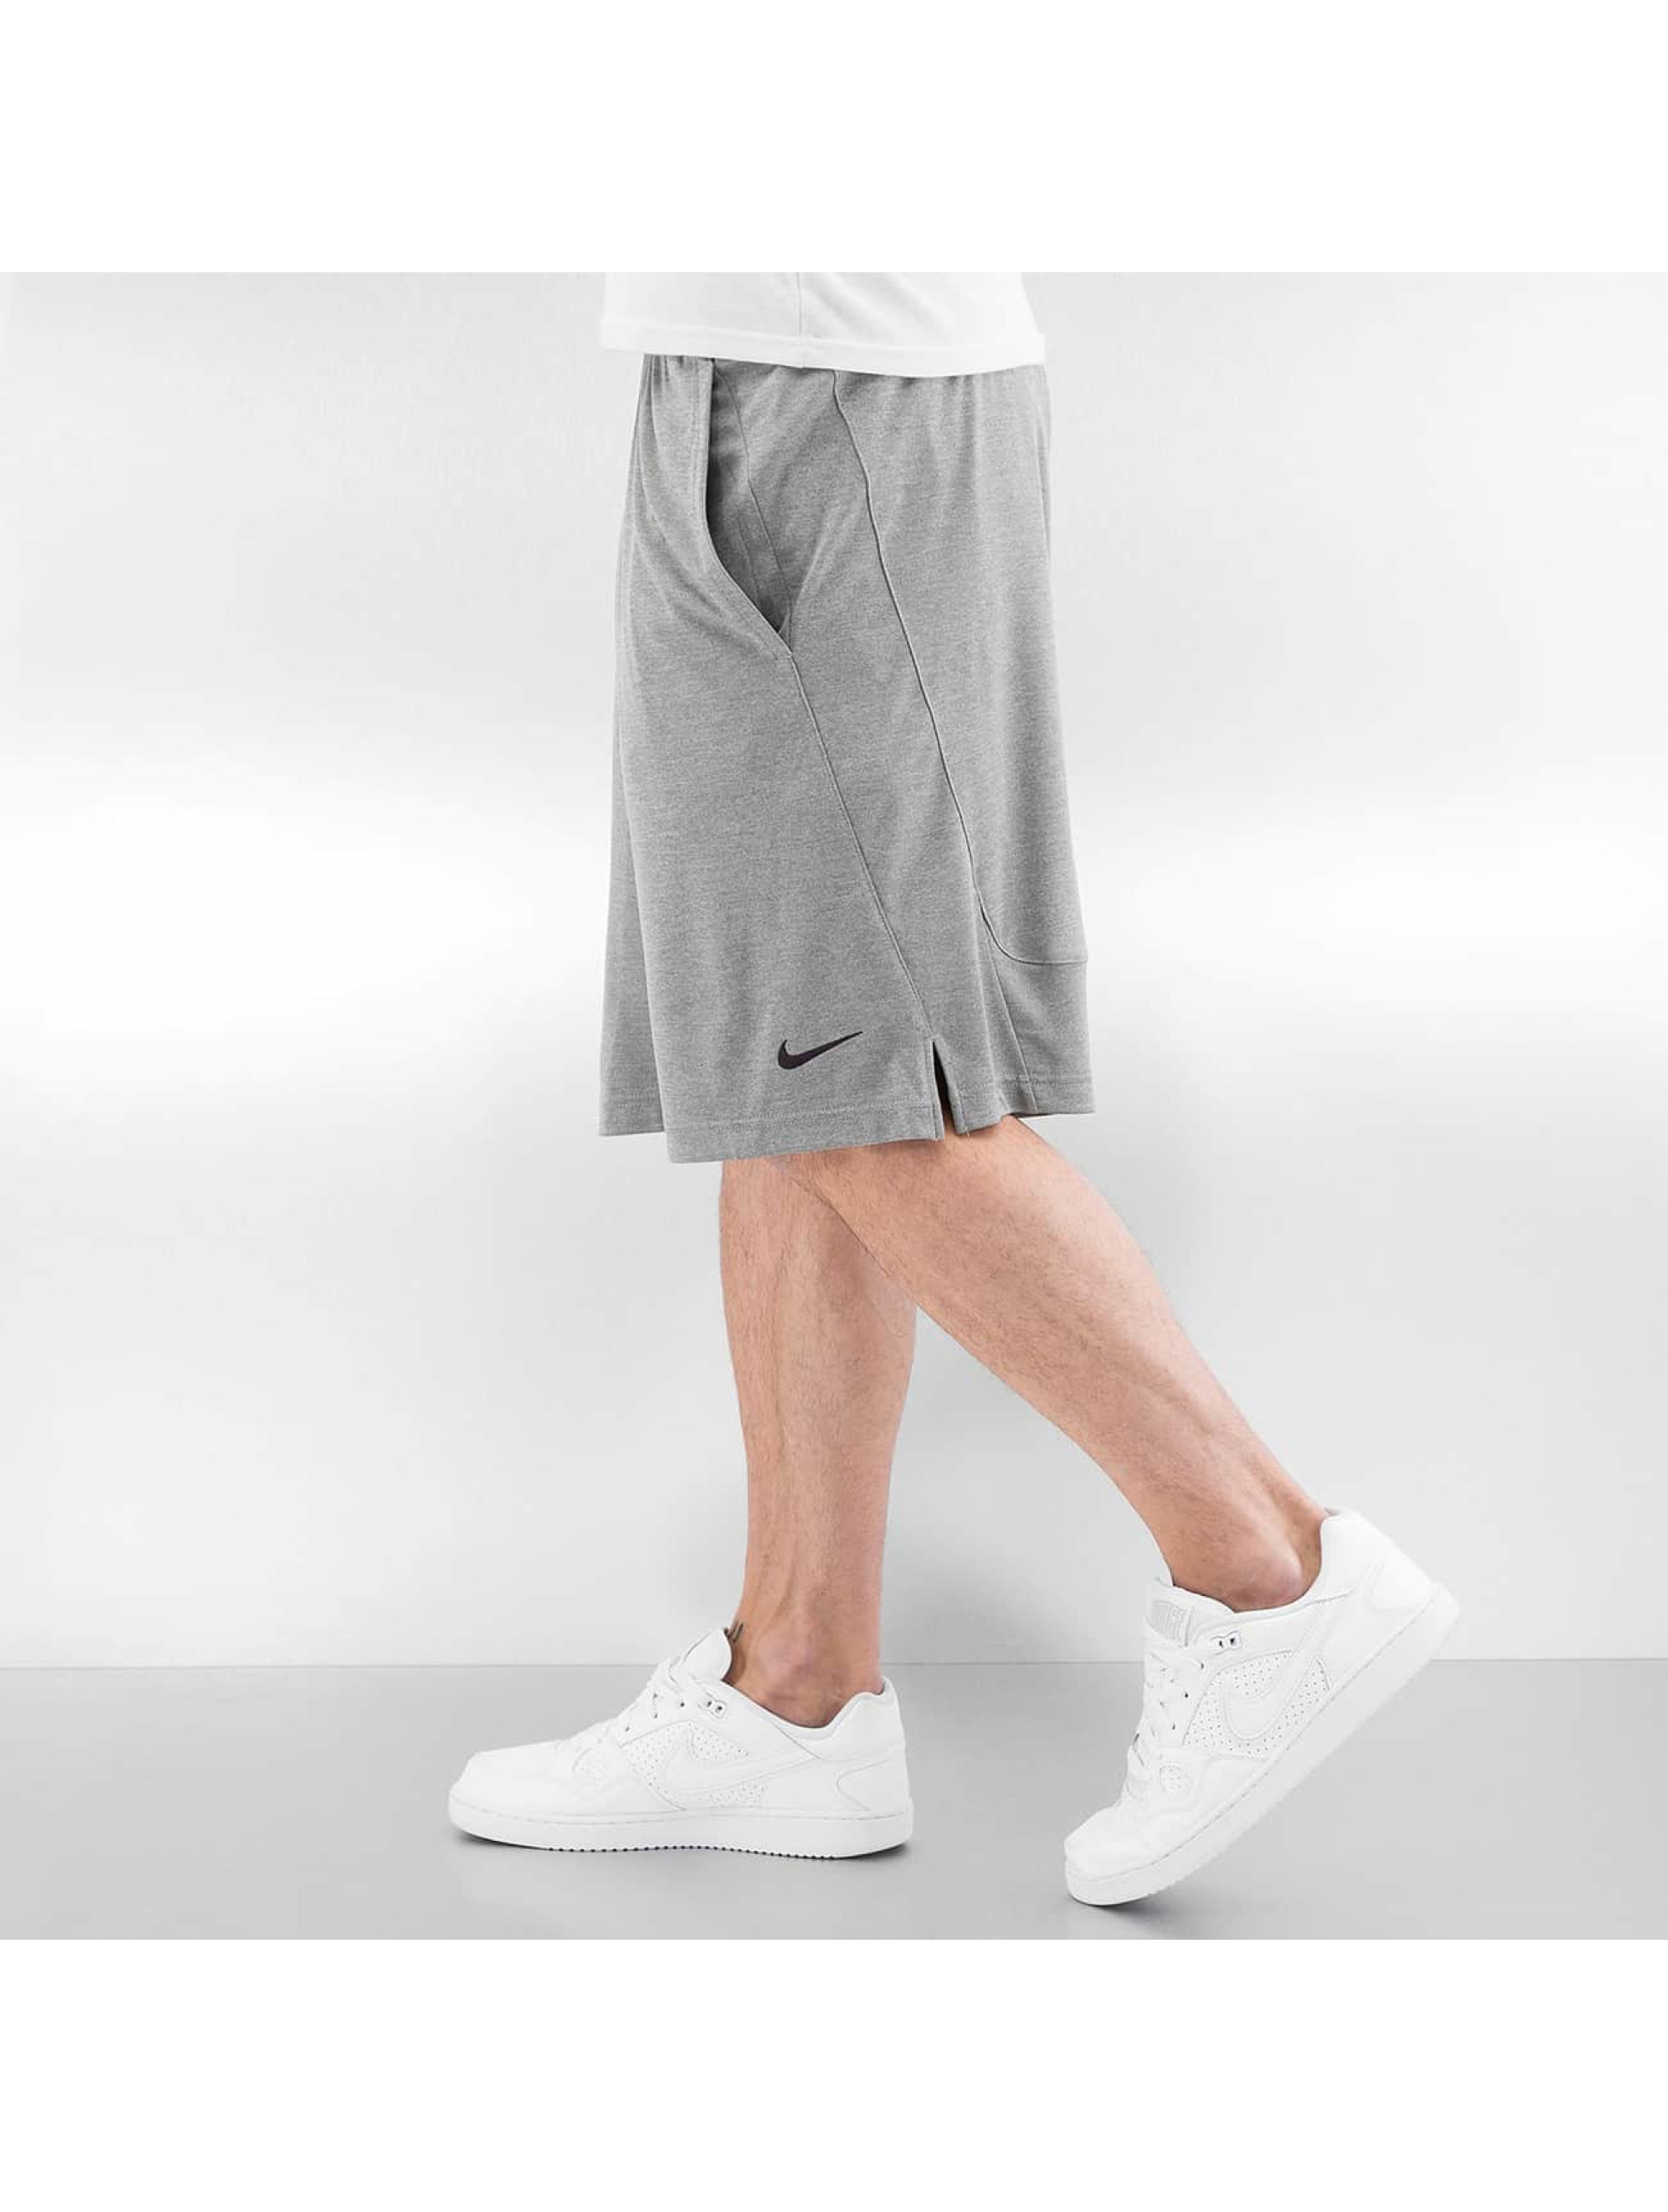 "Nike shorts Fly 9"" grijs"